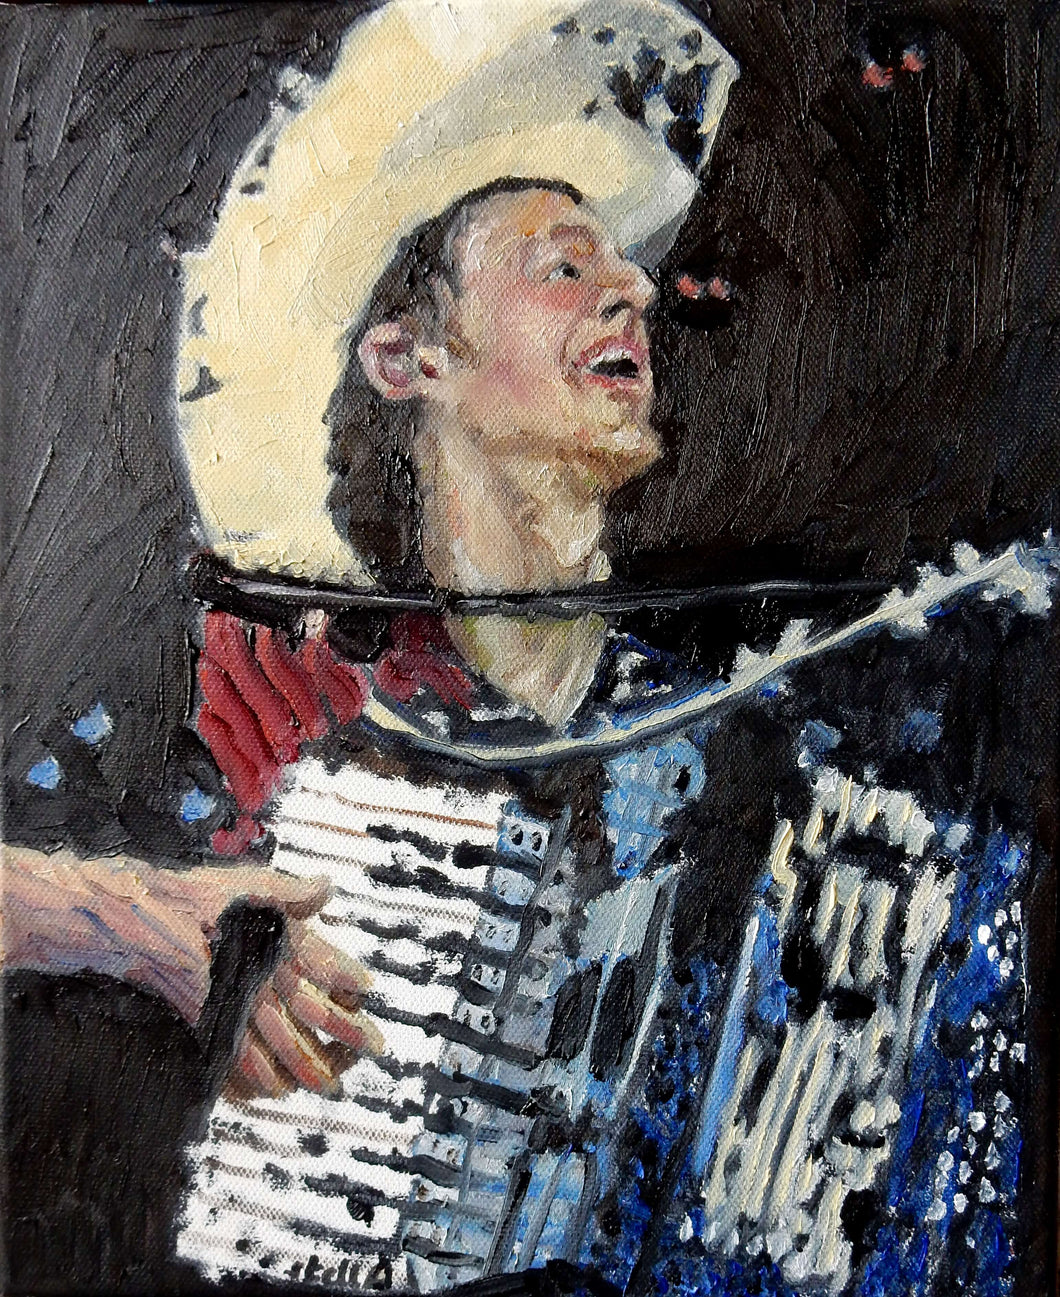 Los Pacaminos accordionist oil on canvas artwork by Stella Tooth